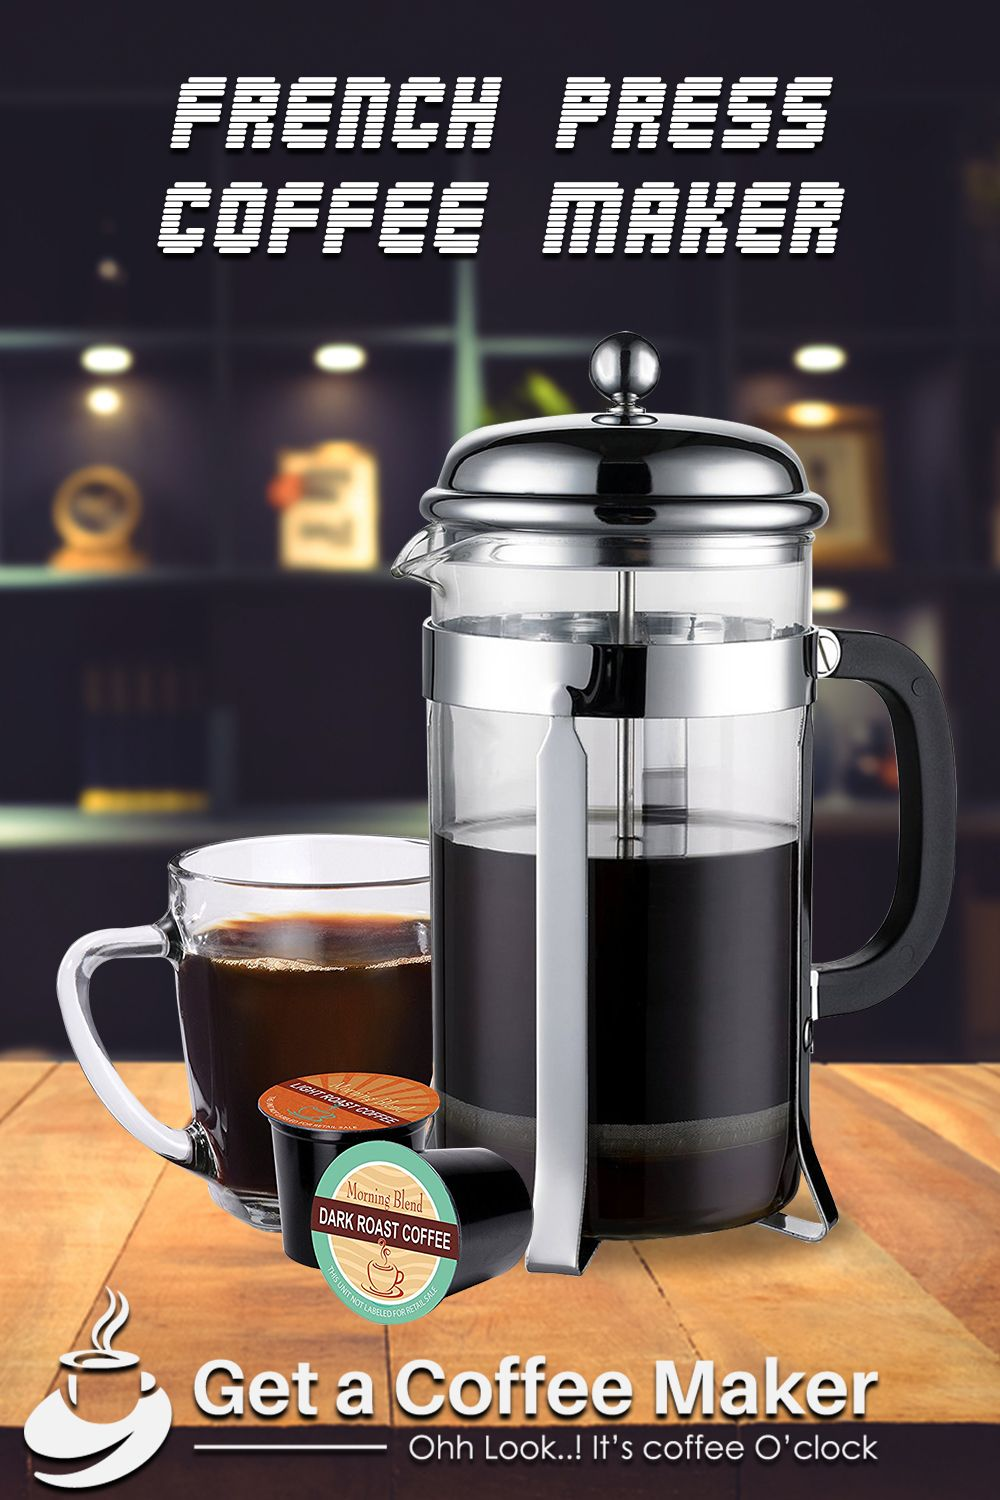 Top 10 French Press Coffee Makers Dec 2019 Reviews Buyers Guide French Press Coffee Maker Coffee Maker Coffee Maker Reviews